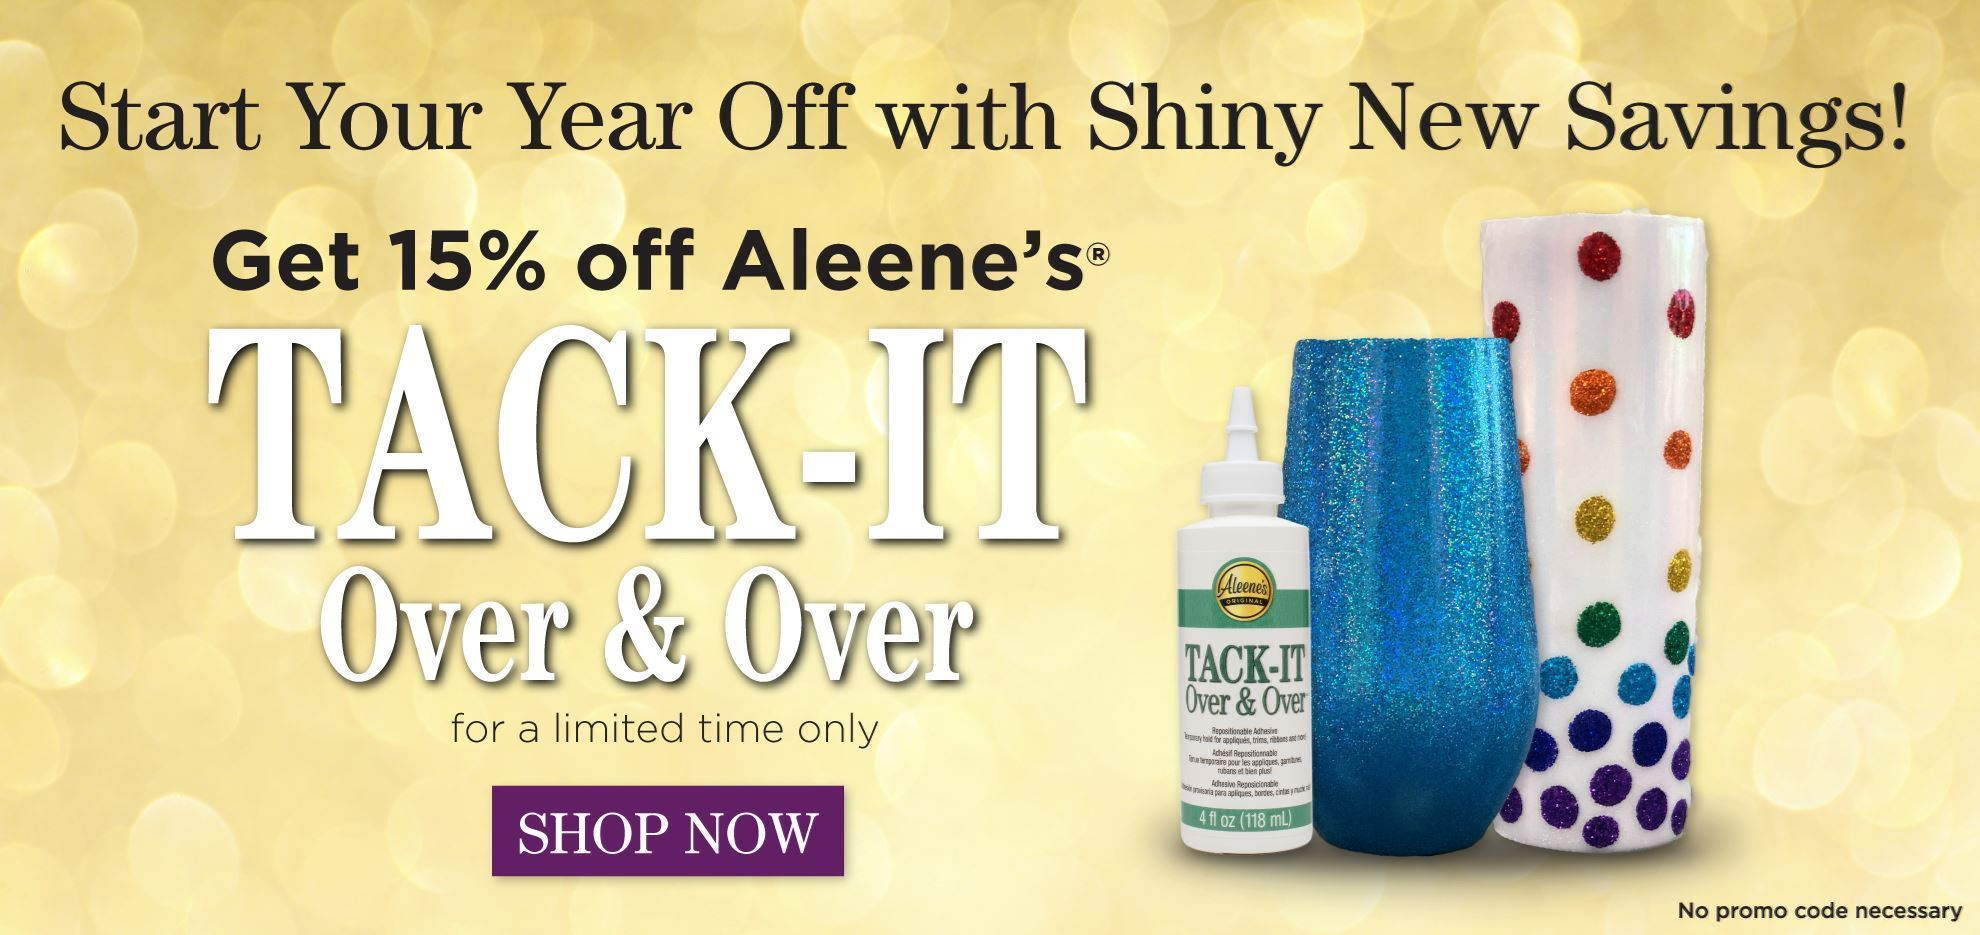 15% Off Aleene's Tack It Over & Over -- January 2021